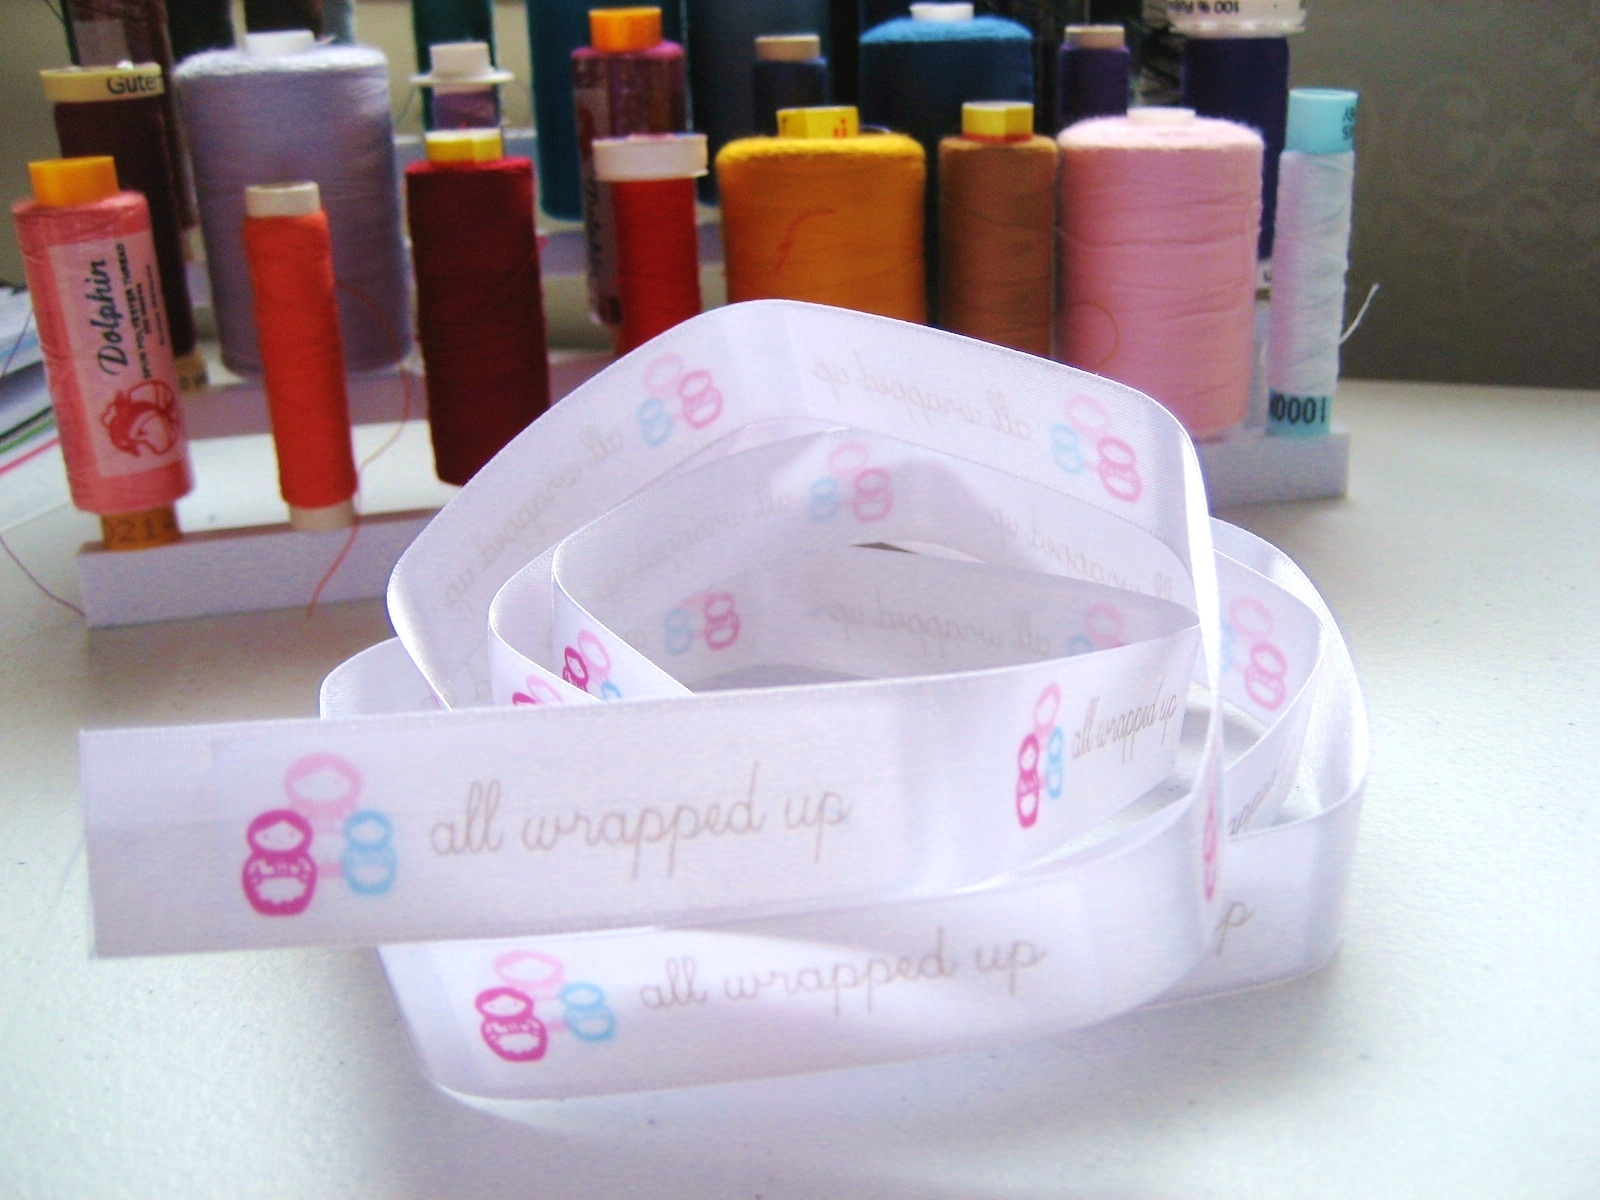 DIY fabric label tutorials - All Wrapped Up